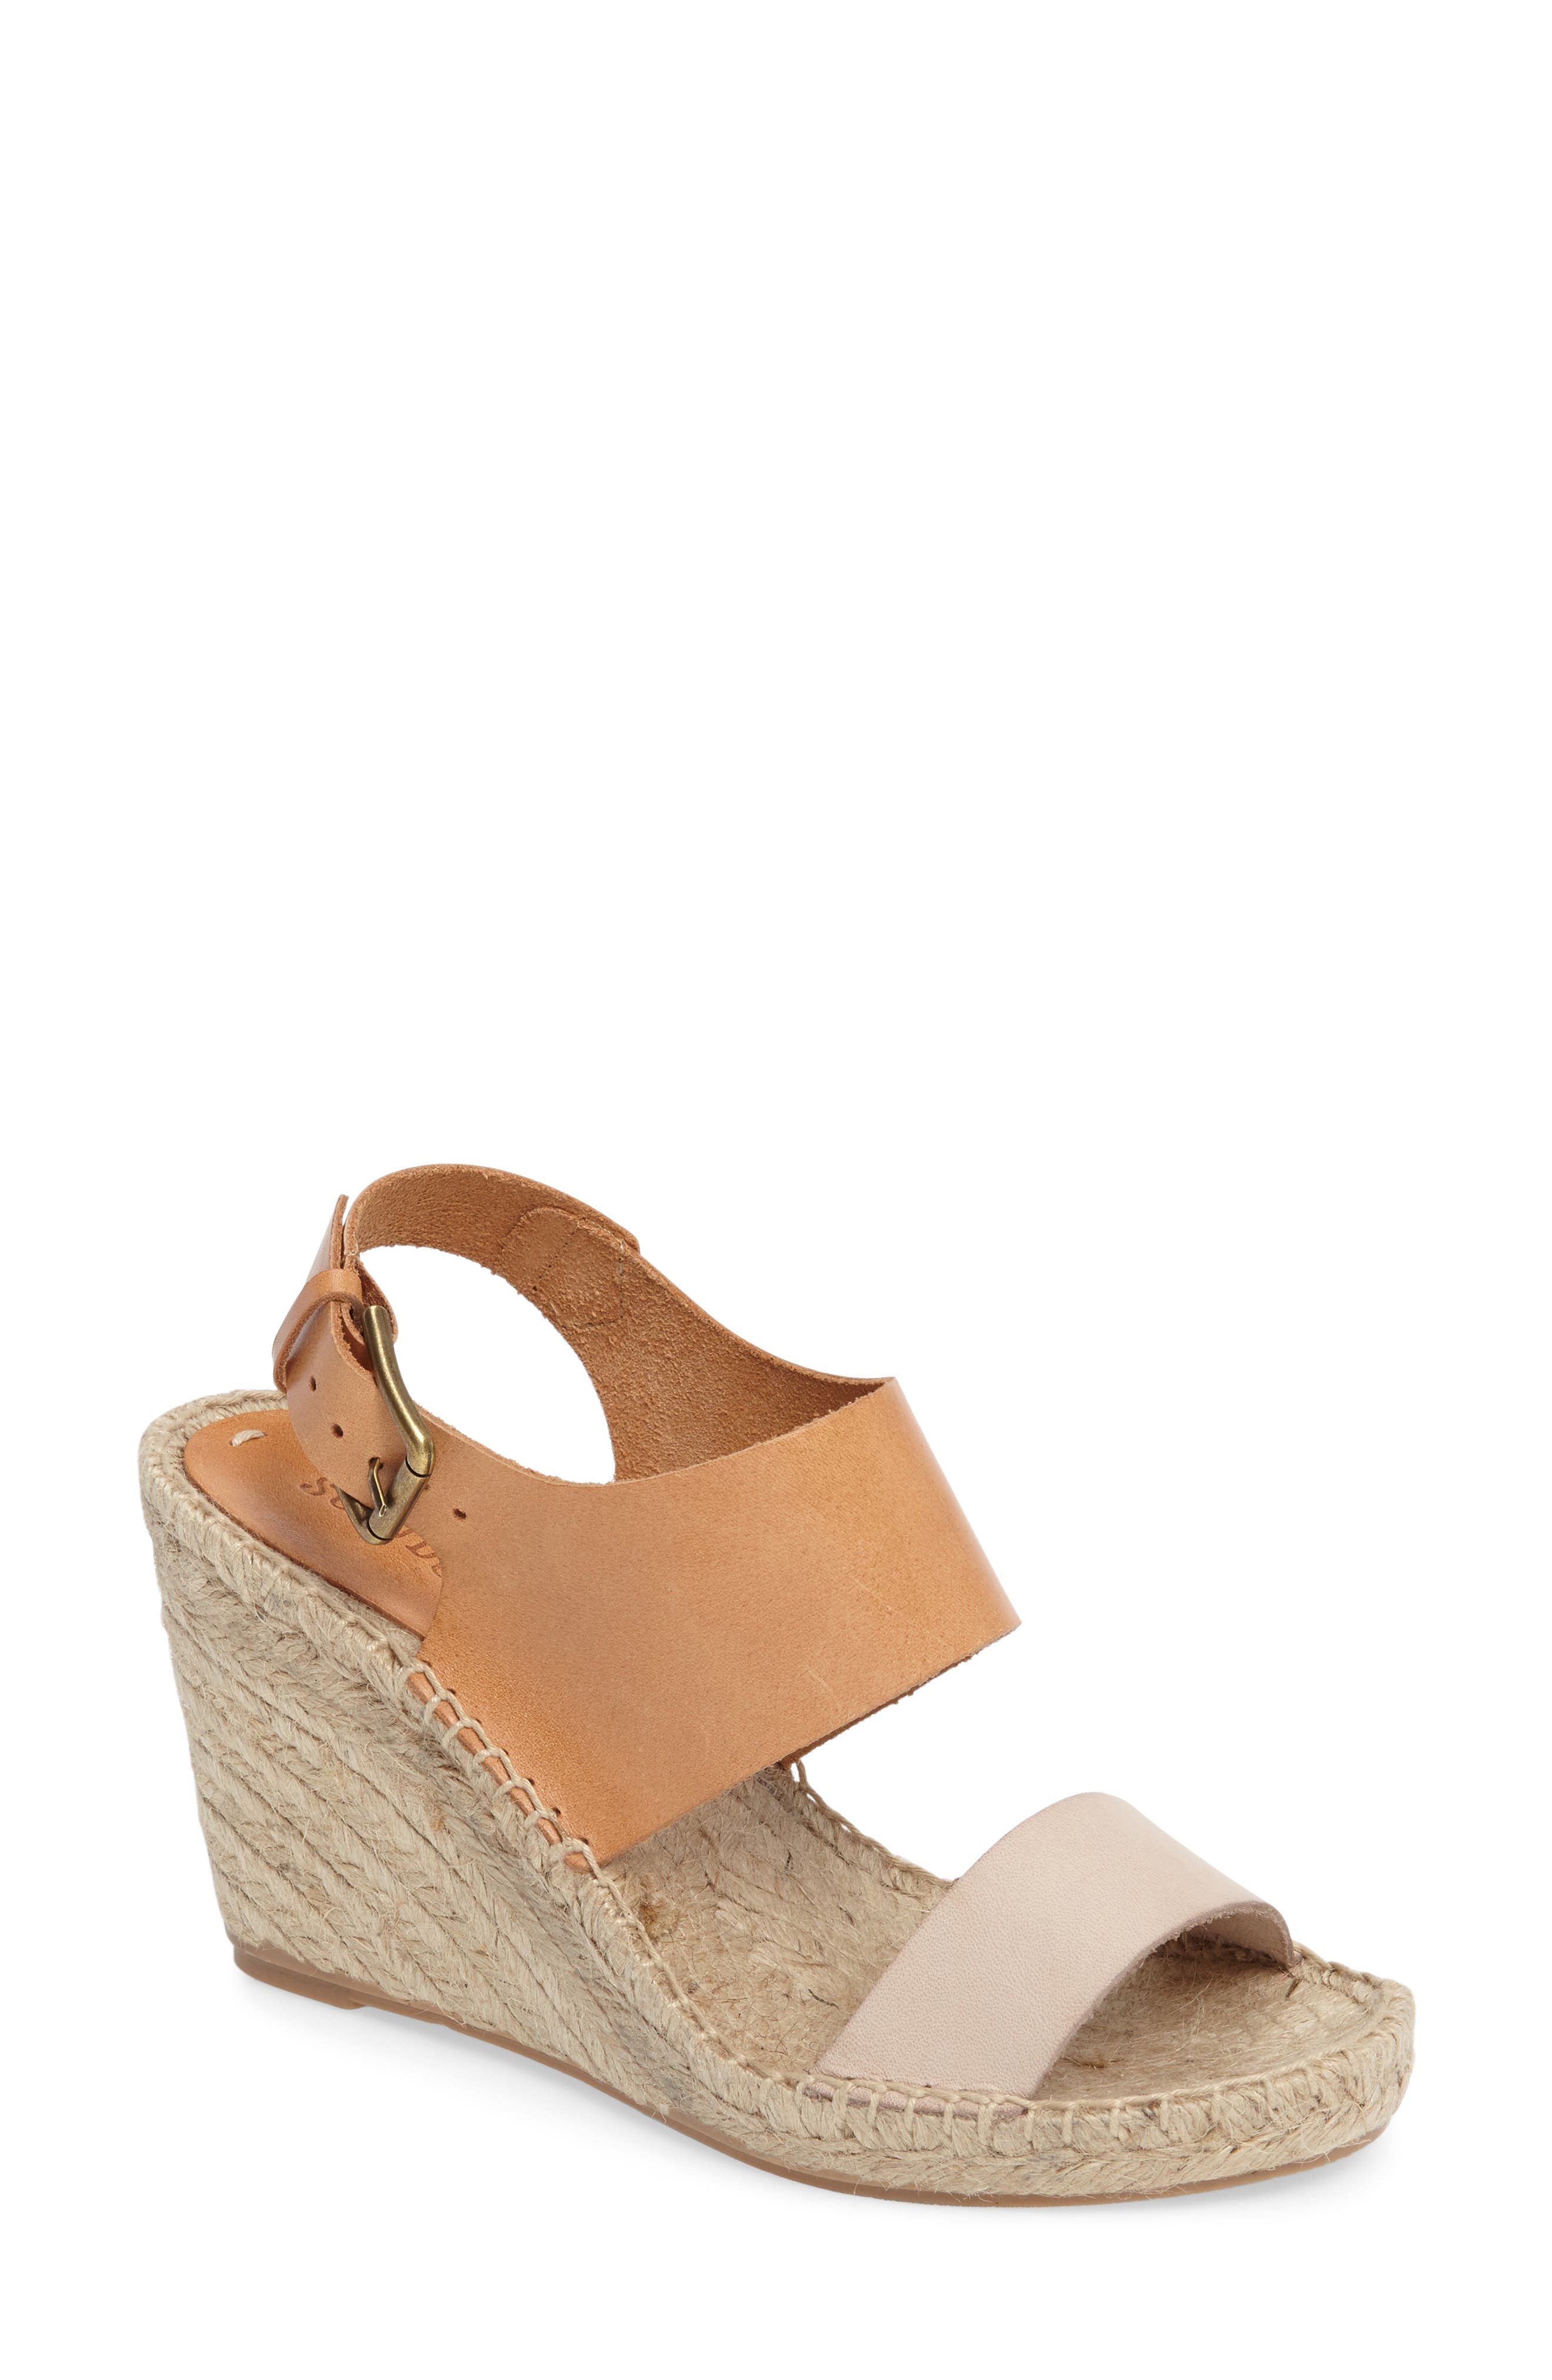 Espadrille Wedge Sandal,                         Main,                         color, Nude/ Ivory Leather